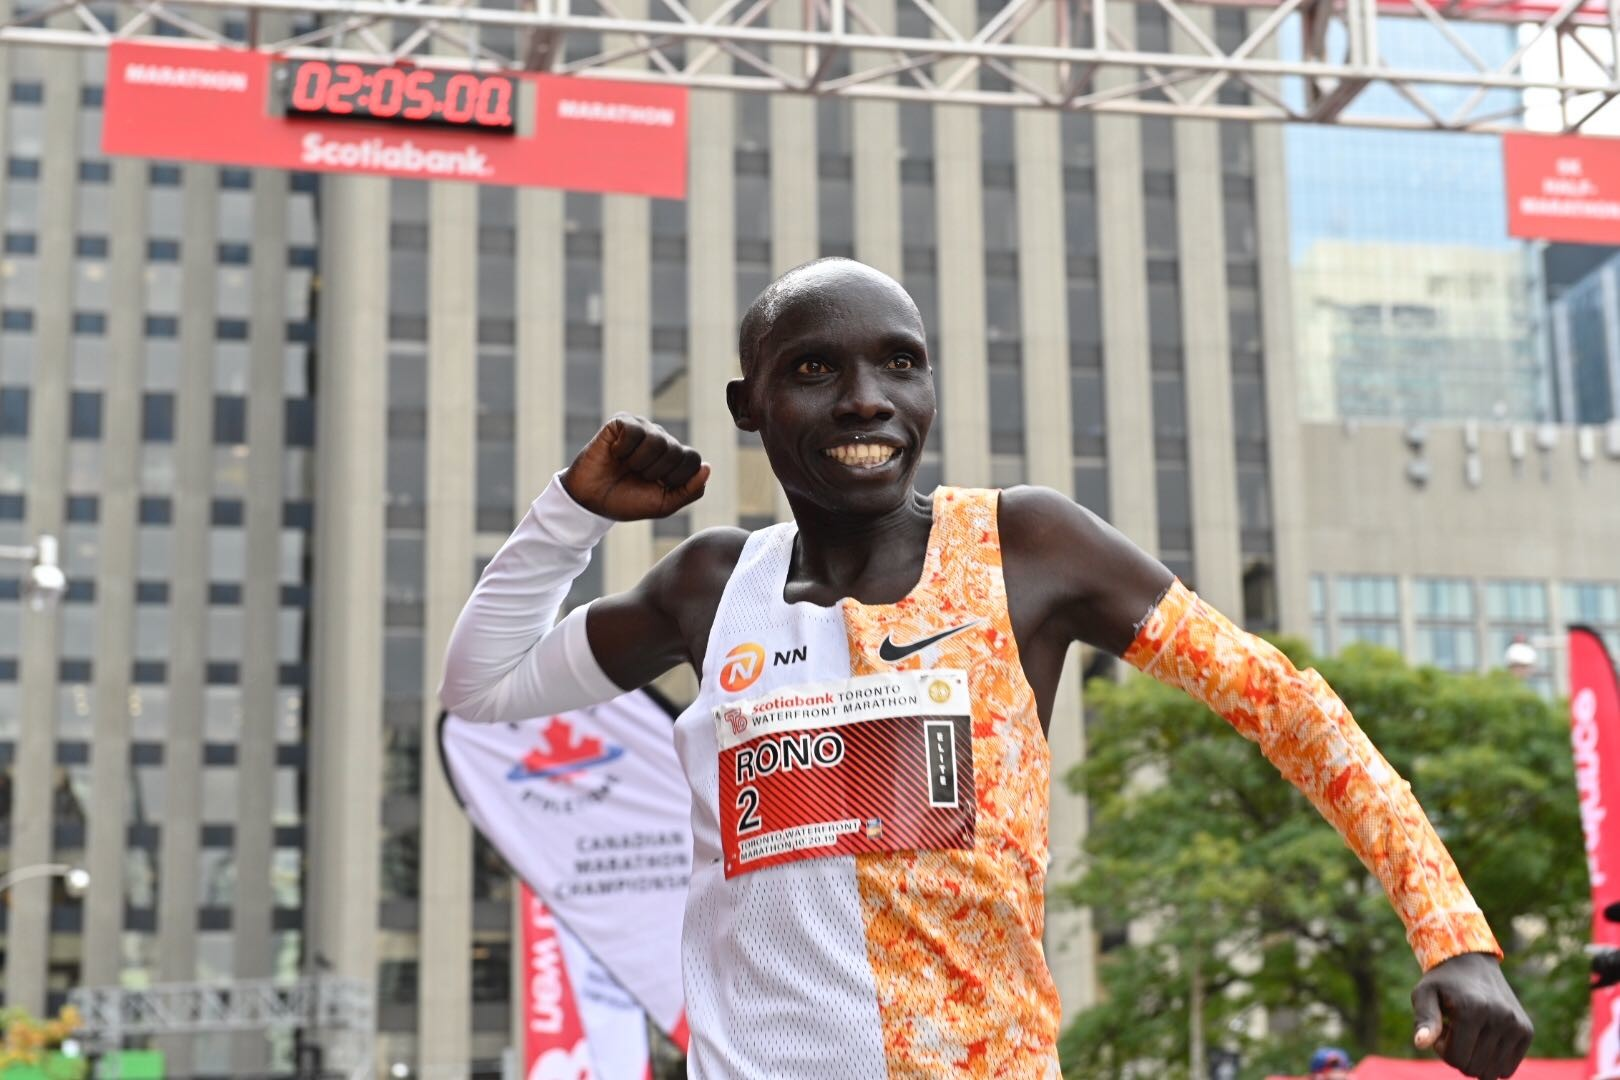 Philemon Rono won the Scotiabank Toronto Waterfront Marathon for the third time on Sunday